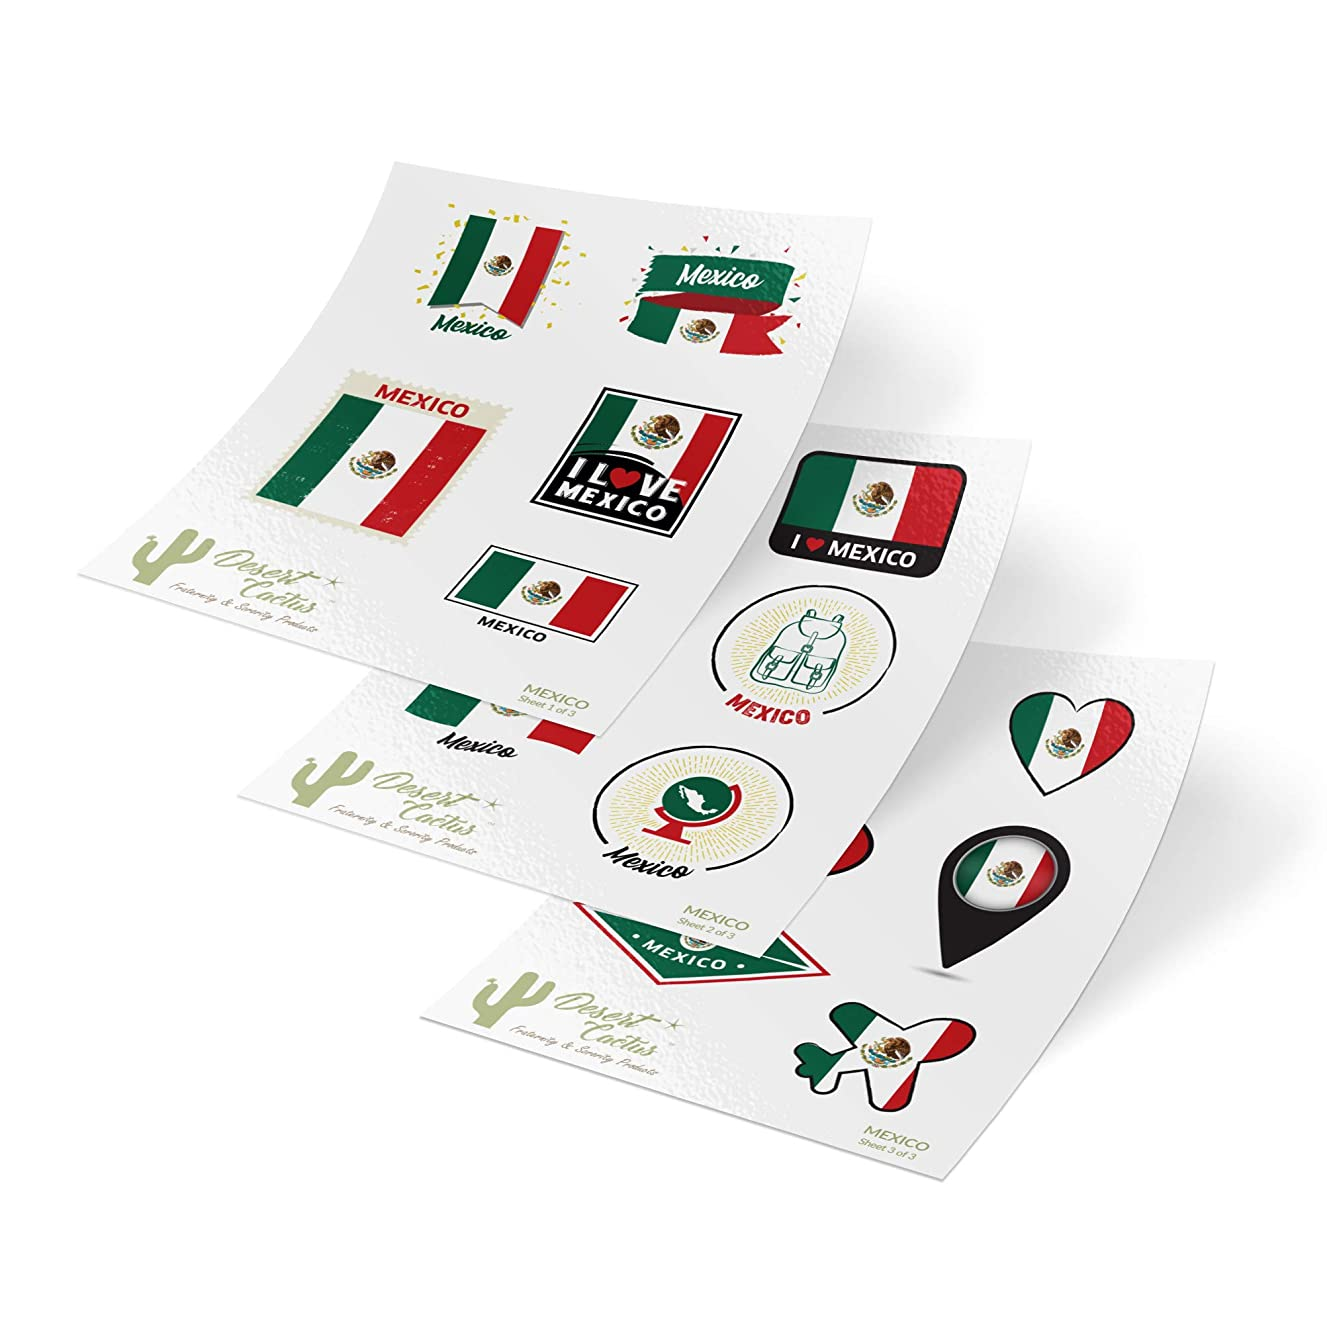 Mexico Country Flag Stickers Decals 3 Sheets 17 Total Pieces Kids Logo Scrapbook Car Vinyl Window Bumper Laptop 3 Sheets